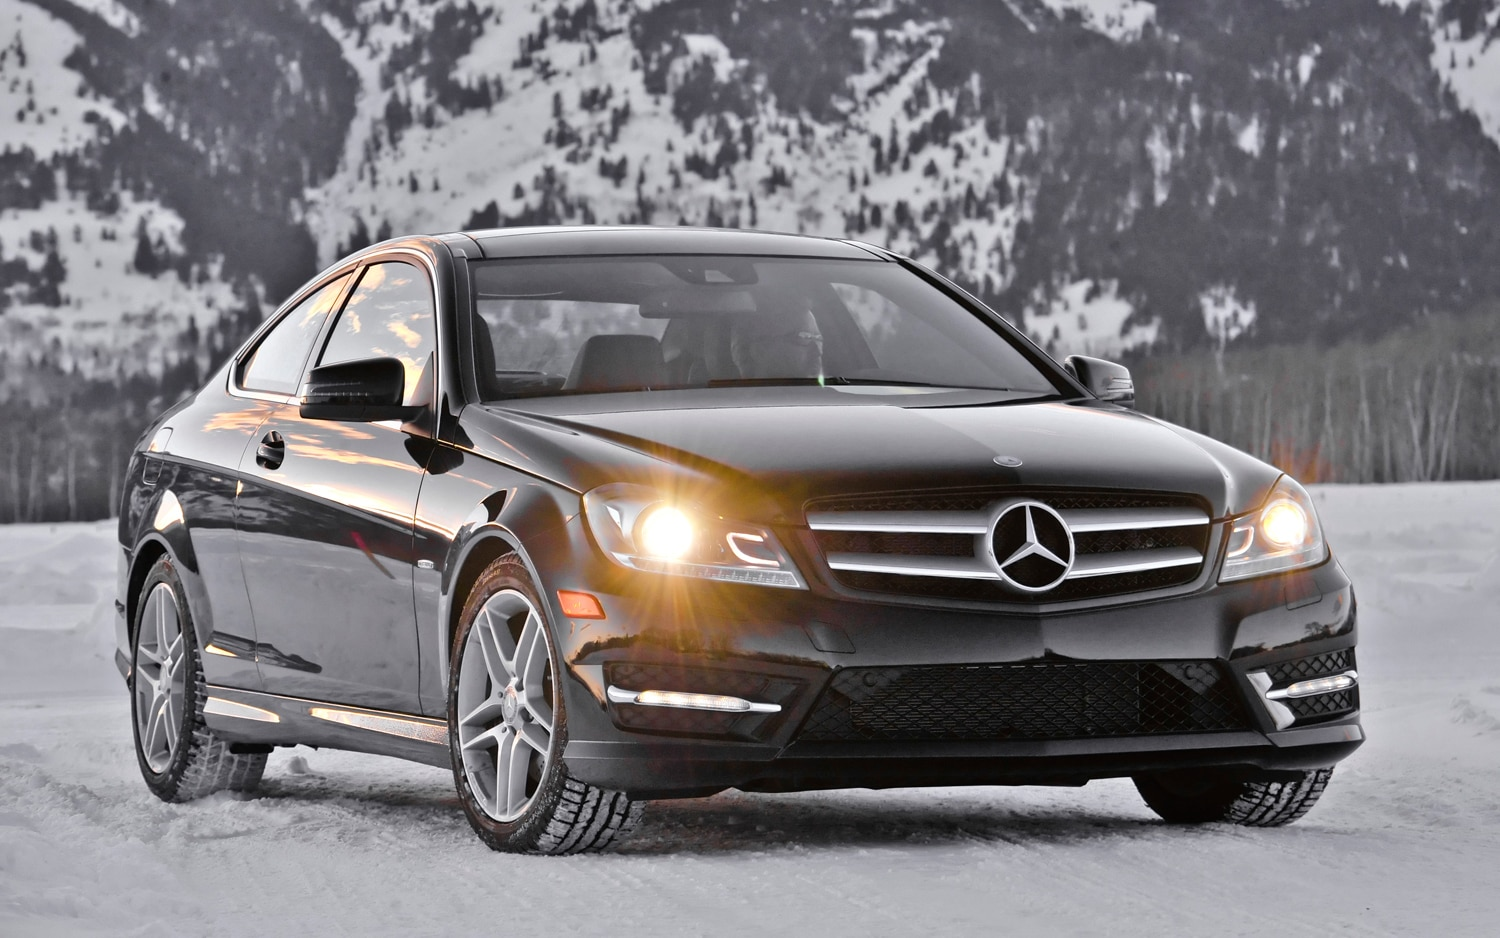 Vw audi and mercedes hot in june bmw sales constrained for Mercedes benz salesman